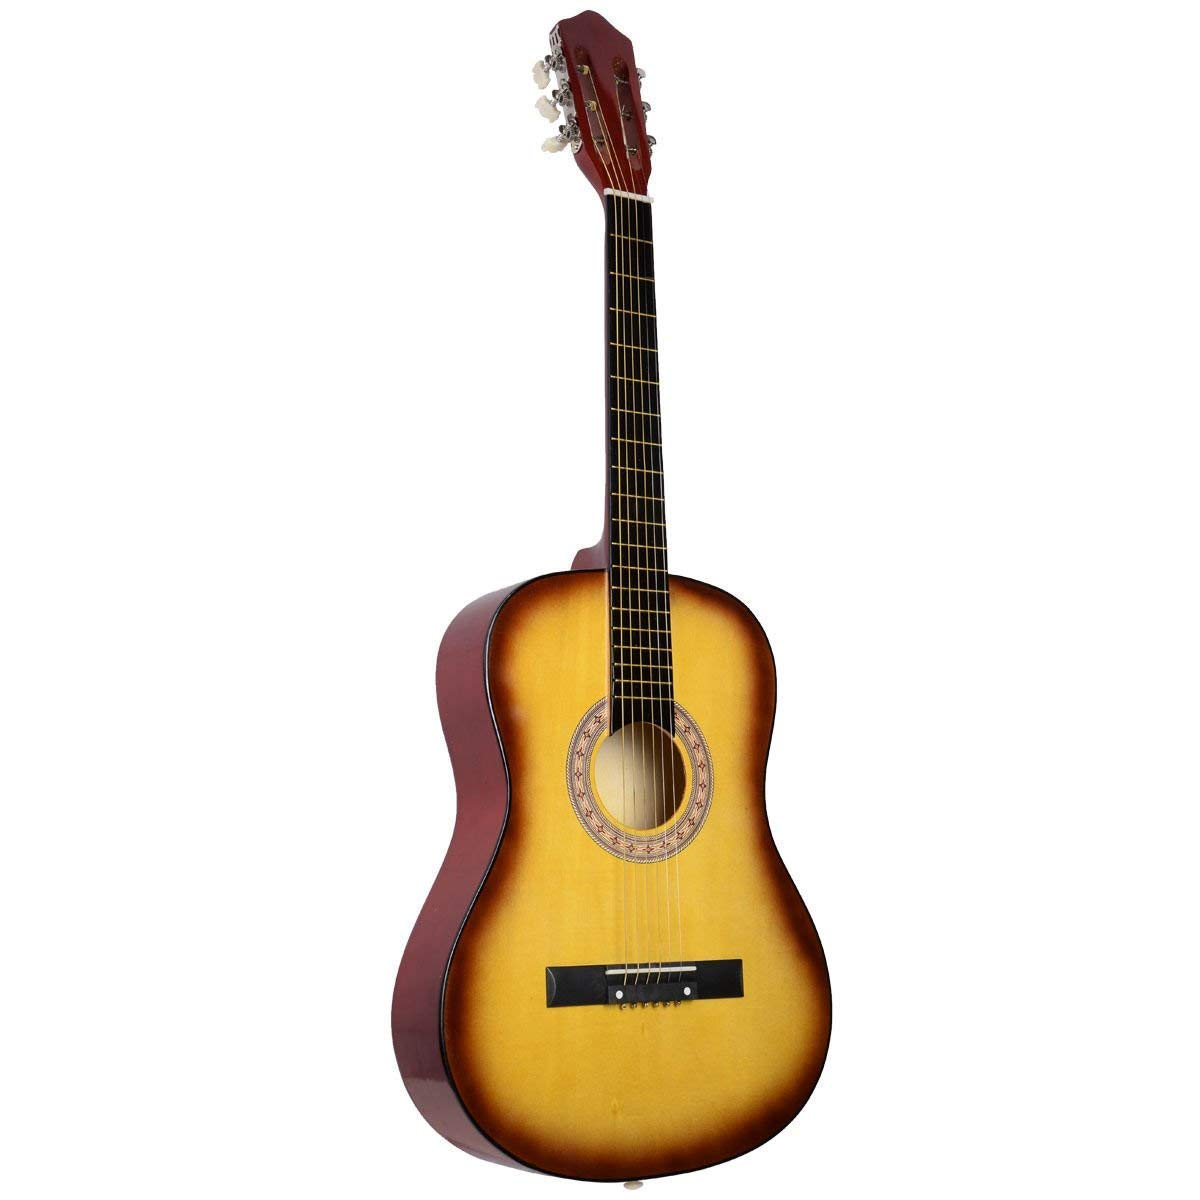 Goplus Acoustic Guitar with Guitar bag, Strap, Tuner and Guitar Pick for New Beginners, Yellow Superbuy